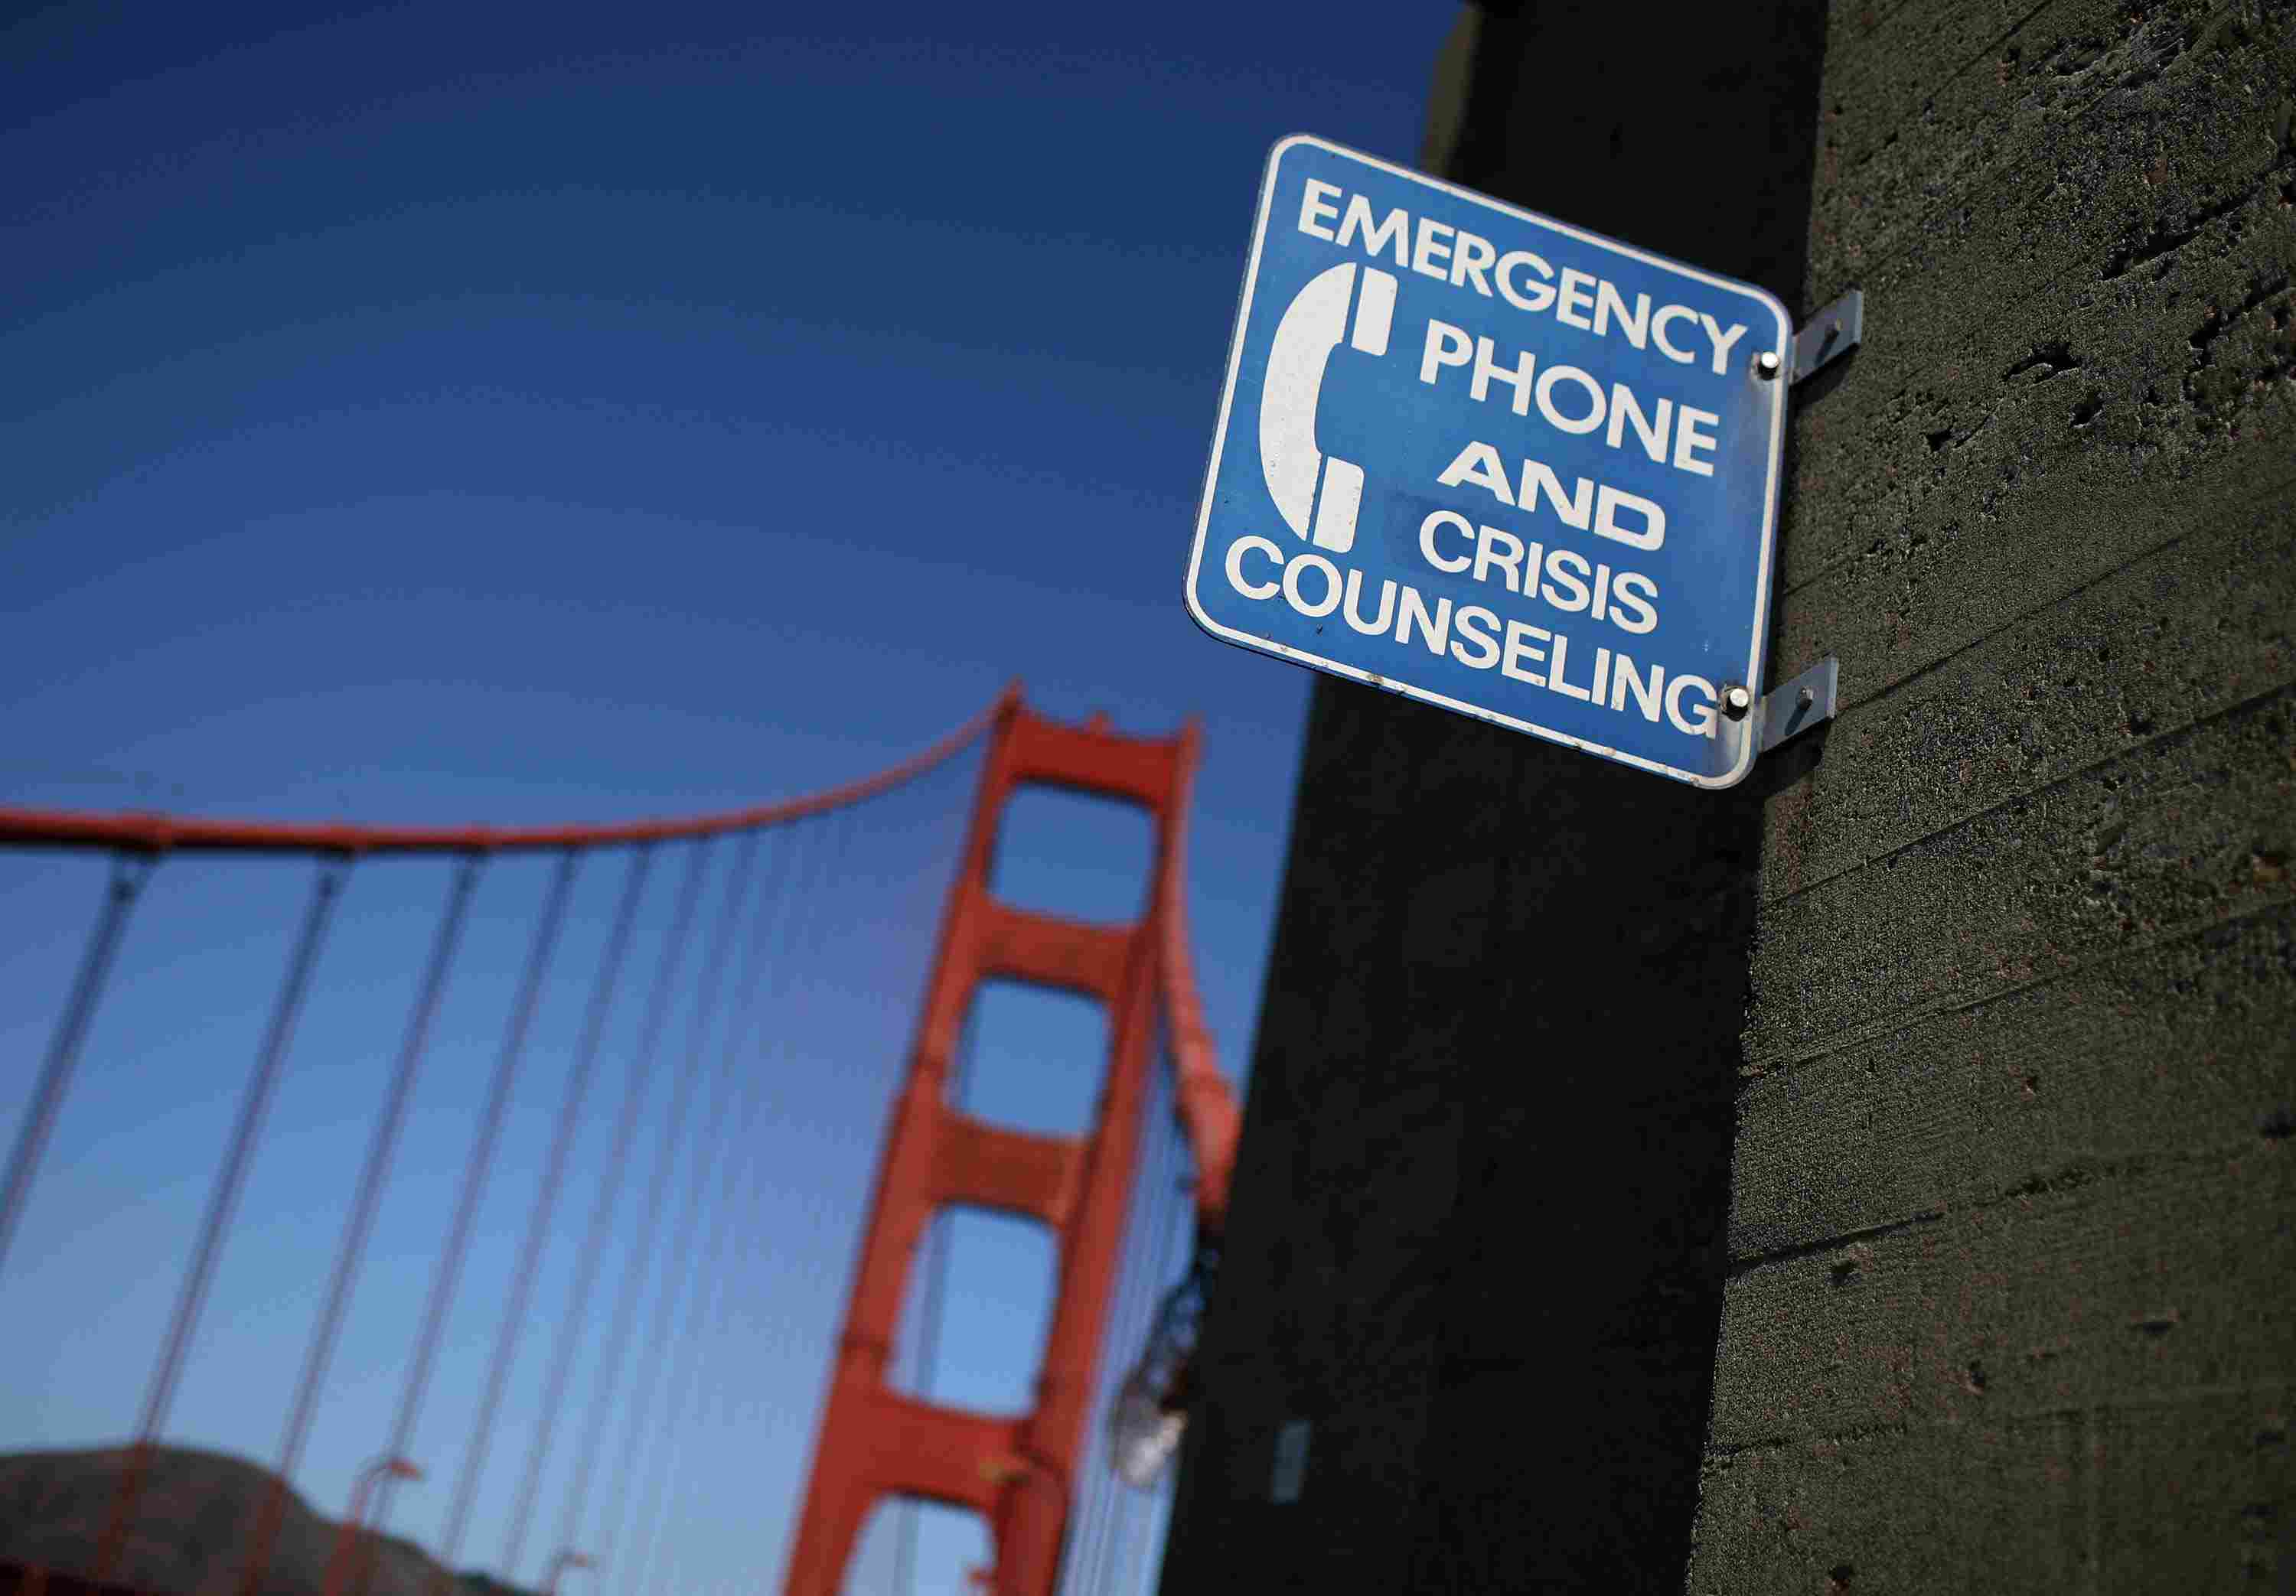 An emergency phone for crisis counseling sits on the Golden Gate Bridge in San Francisco, designed to prevent suicide. Sociologist Emile Durkheim found that there can be social rather than individual causes to suicide.